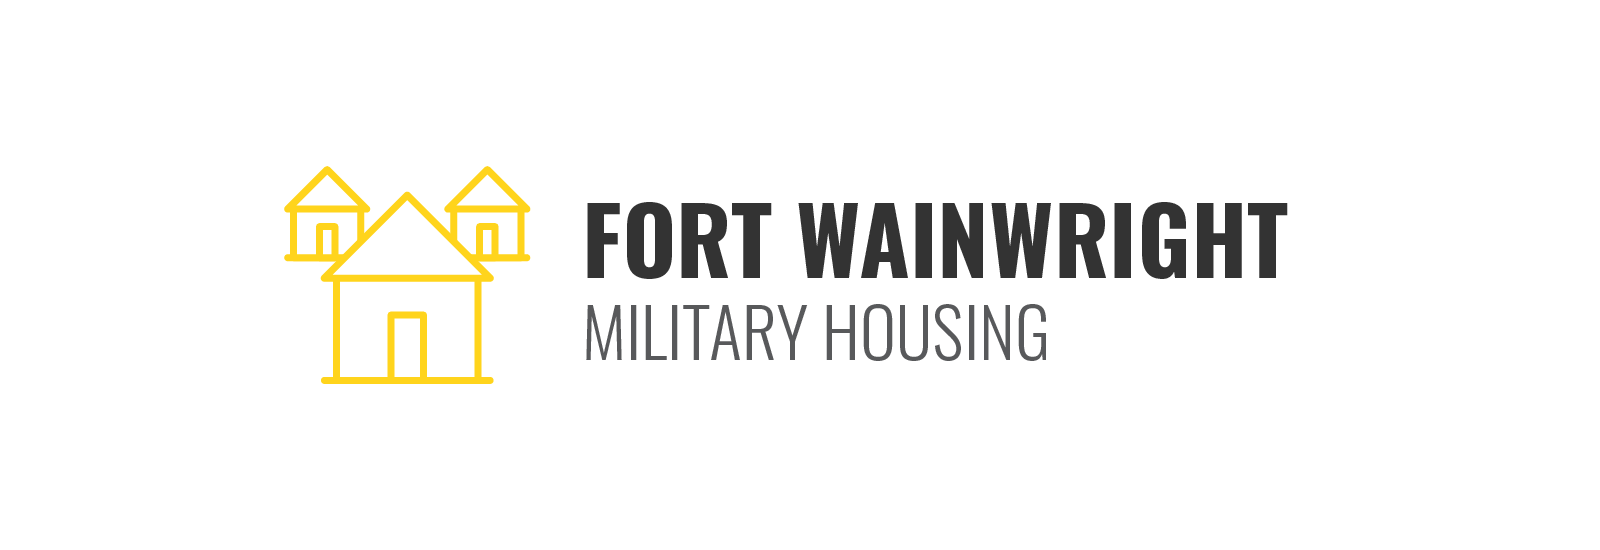 Image Alt Text: Fort Wainwright Military Housing